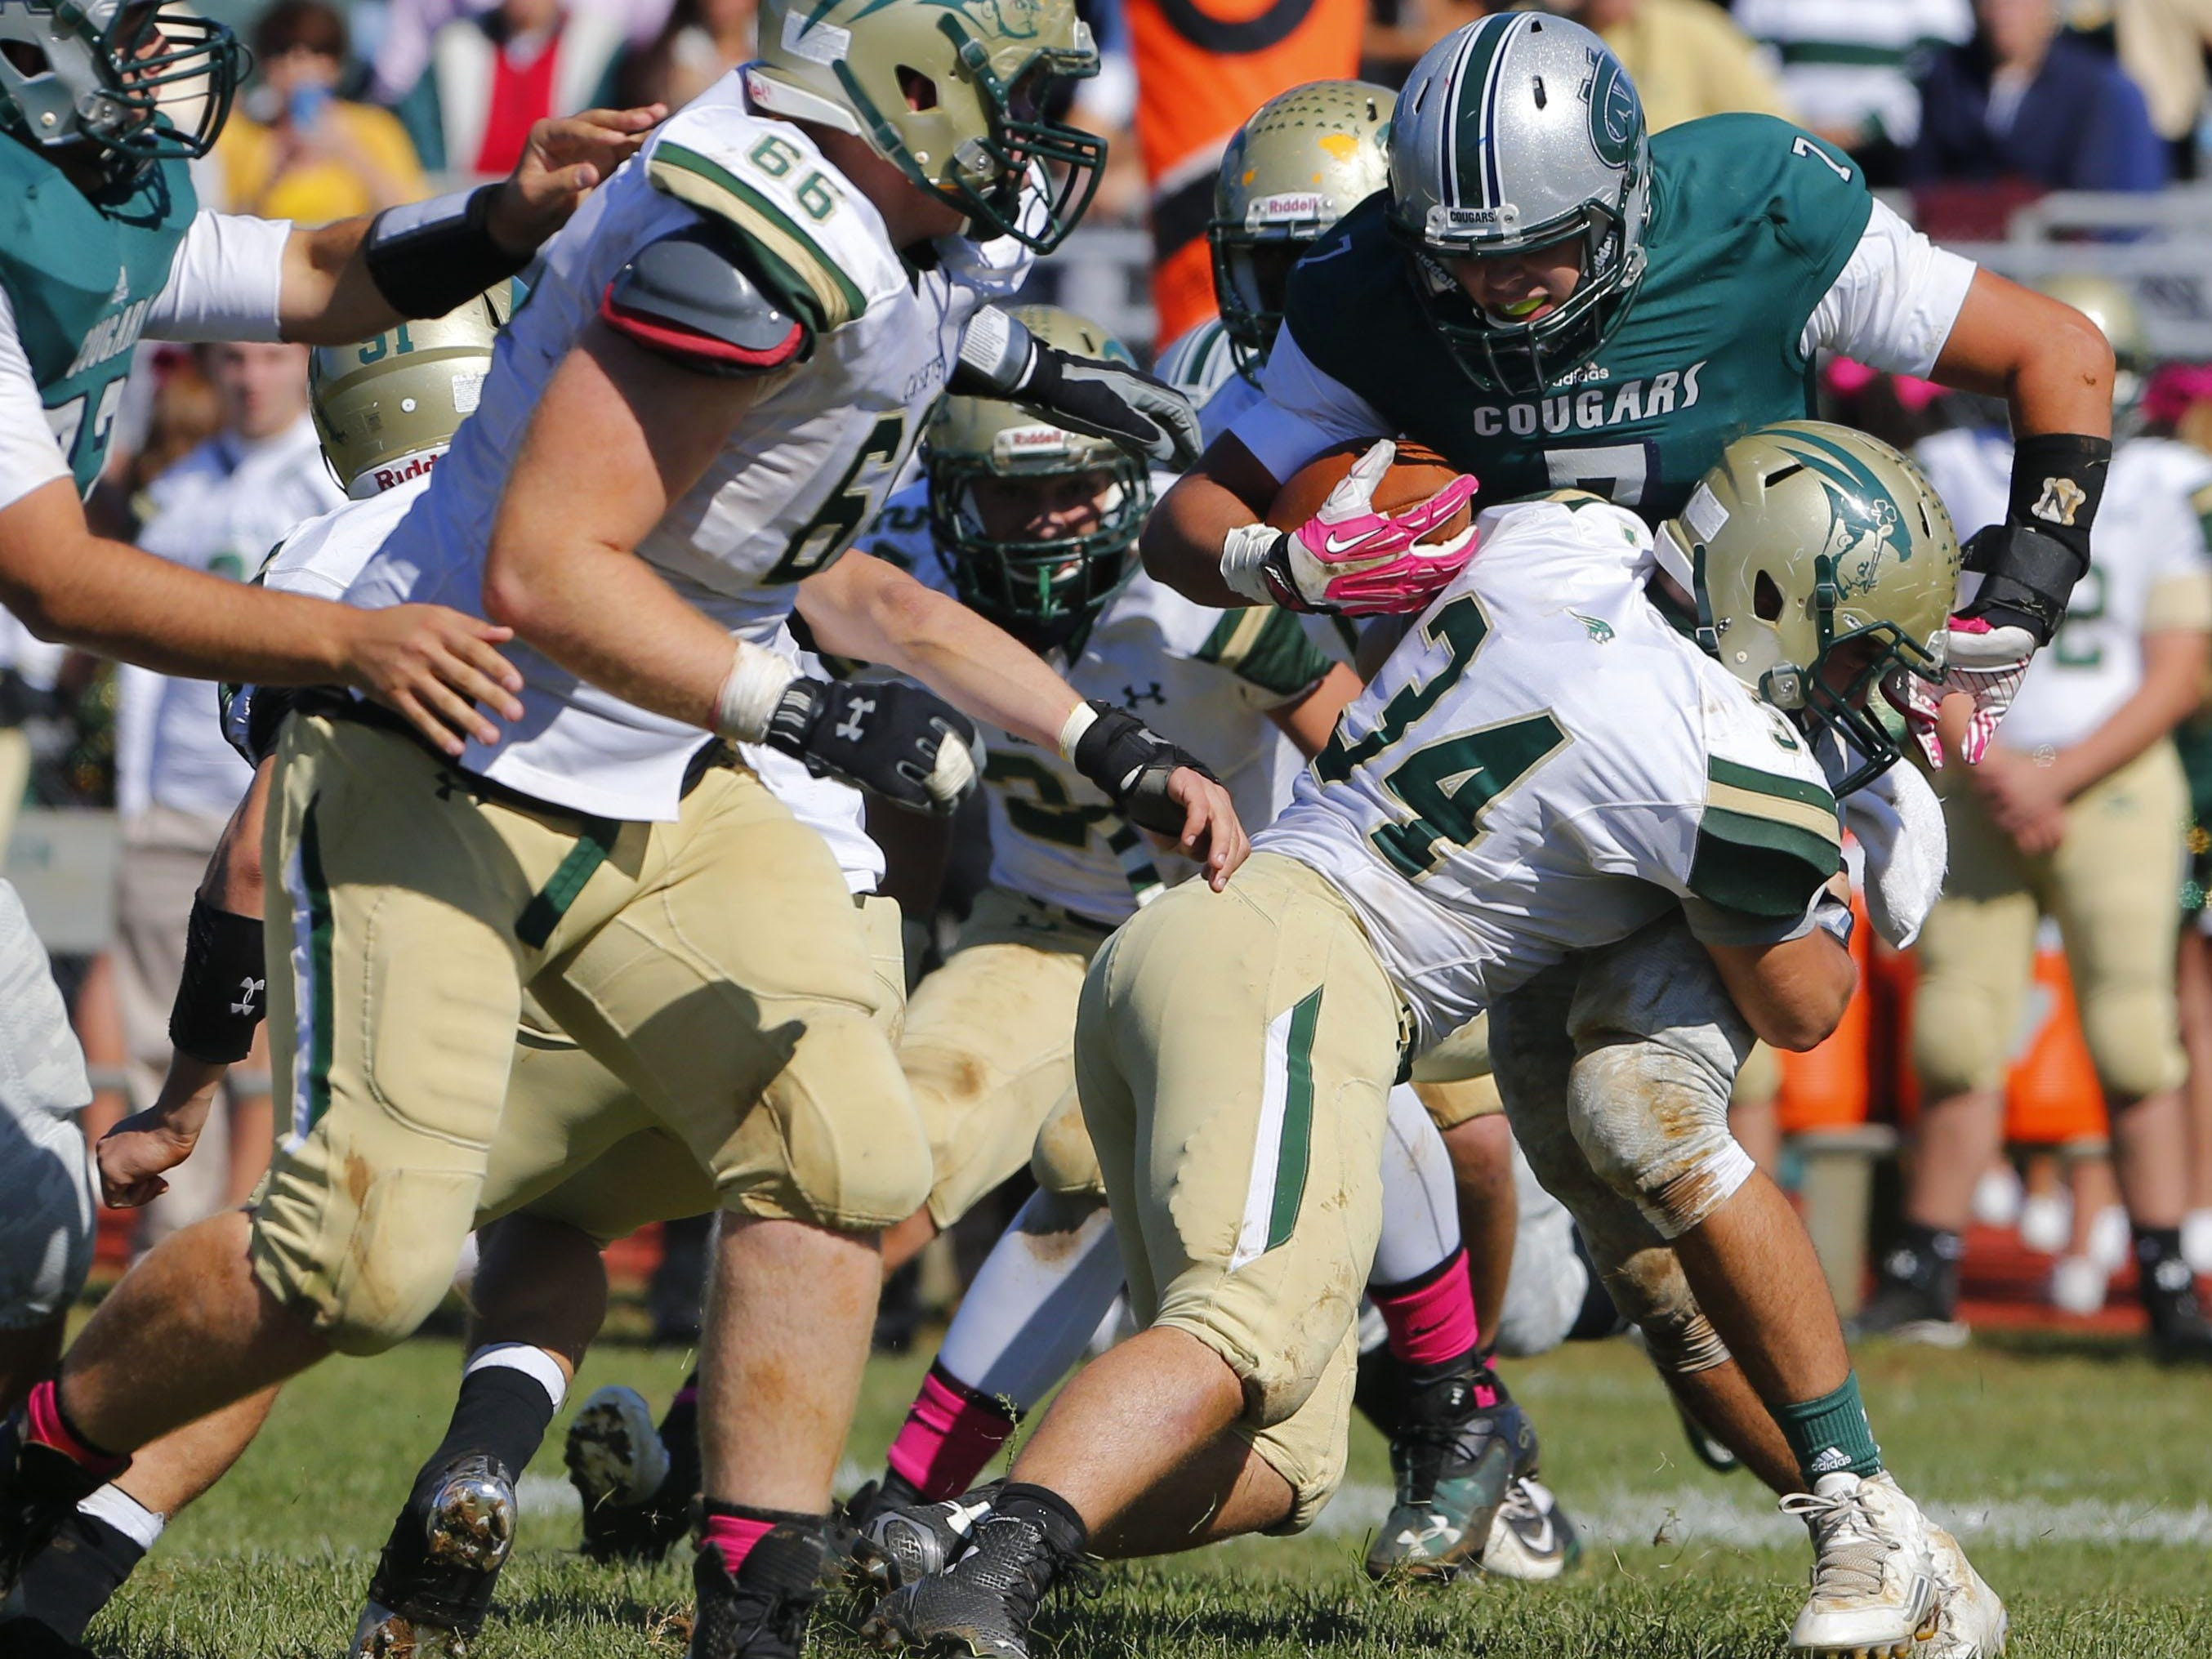 Max Mullaney (7) of Colts Neck is Stopped by Joey Hagan (34) of Red Bank catholic during game at Colts Neck High School, Colts Neck,NJ. Saturday, October 10, 2015.